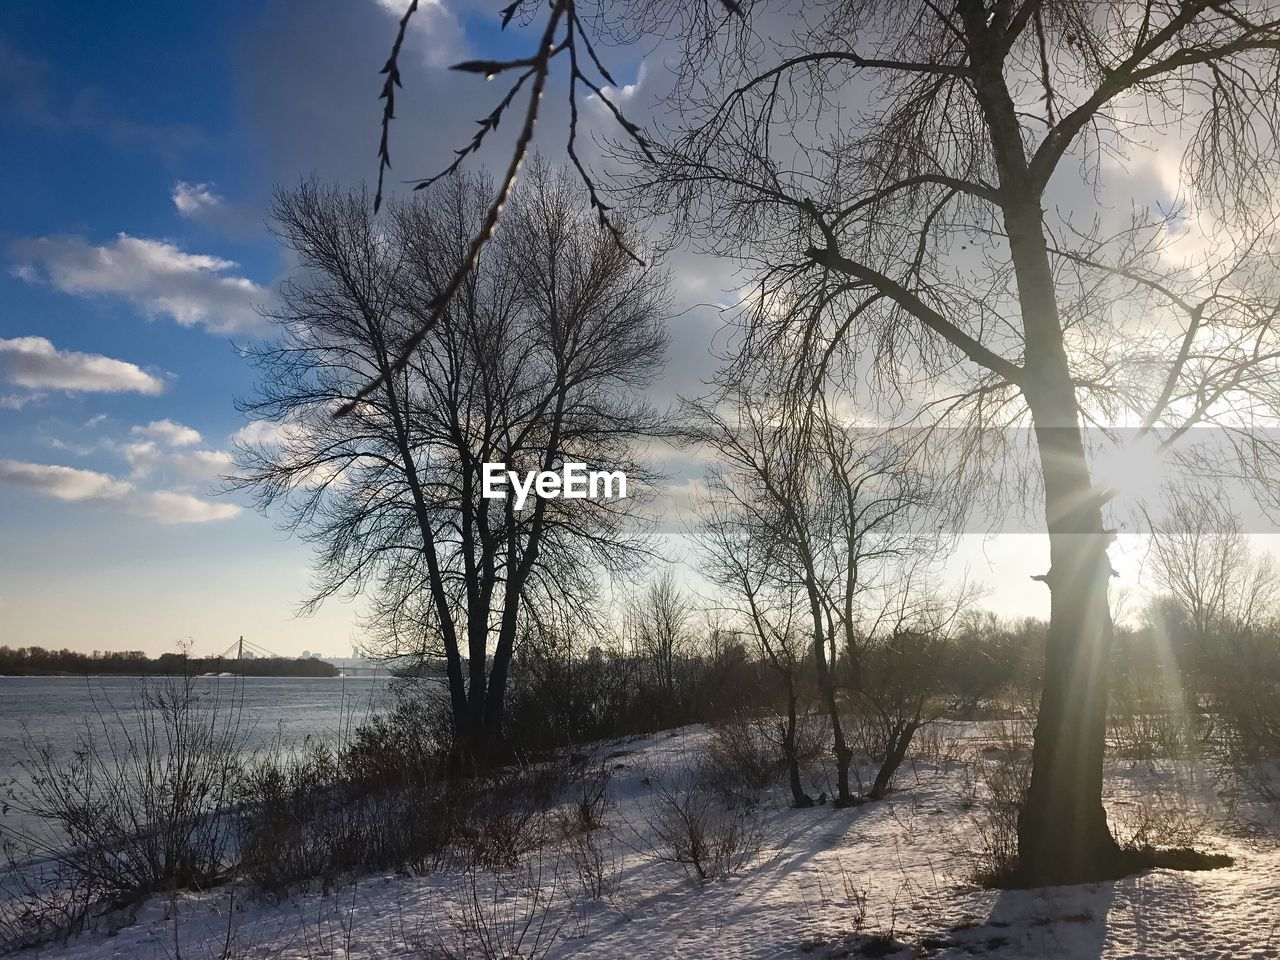 nature, bare tree, tranquil scene, winter, tree, cold temperature, tranquility, beauty in nature, scenics, snow, outdoors, sunlight, landscape, sky, no people, branch, day